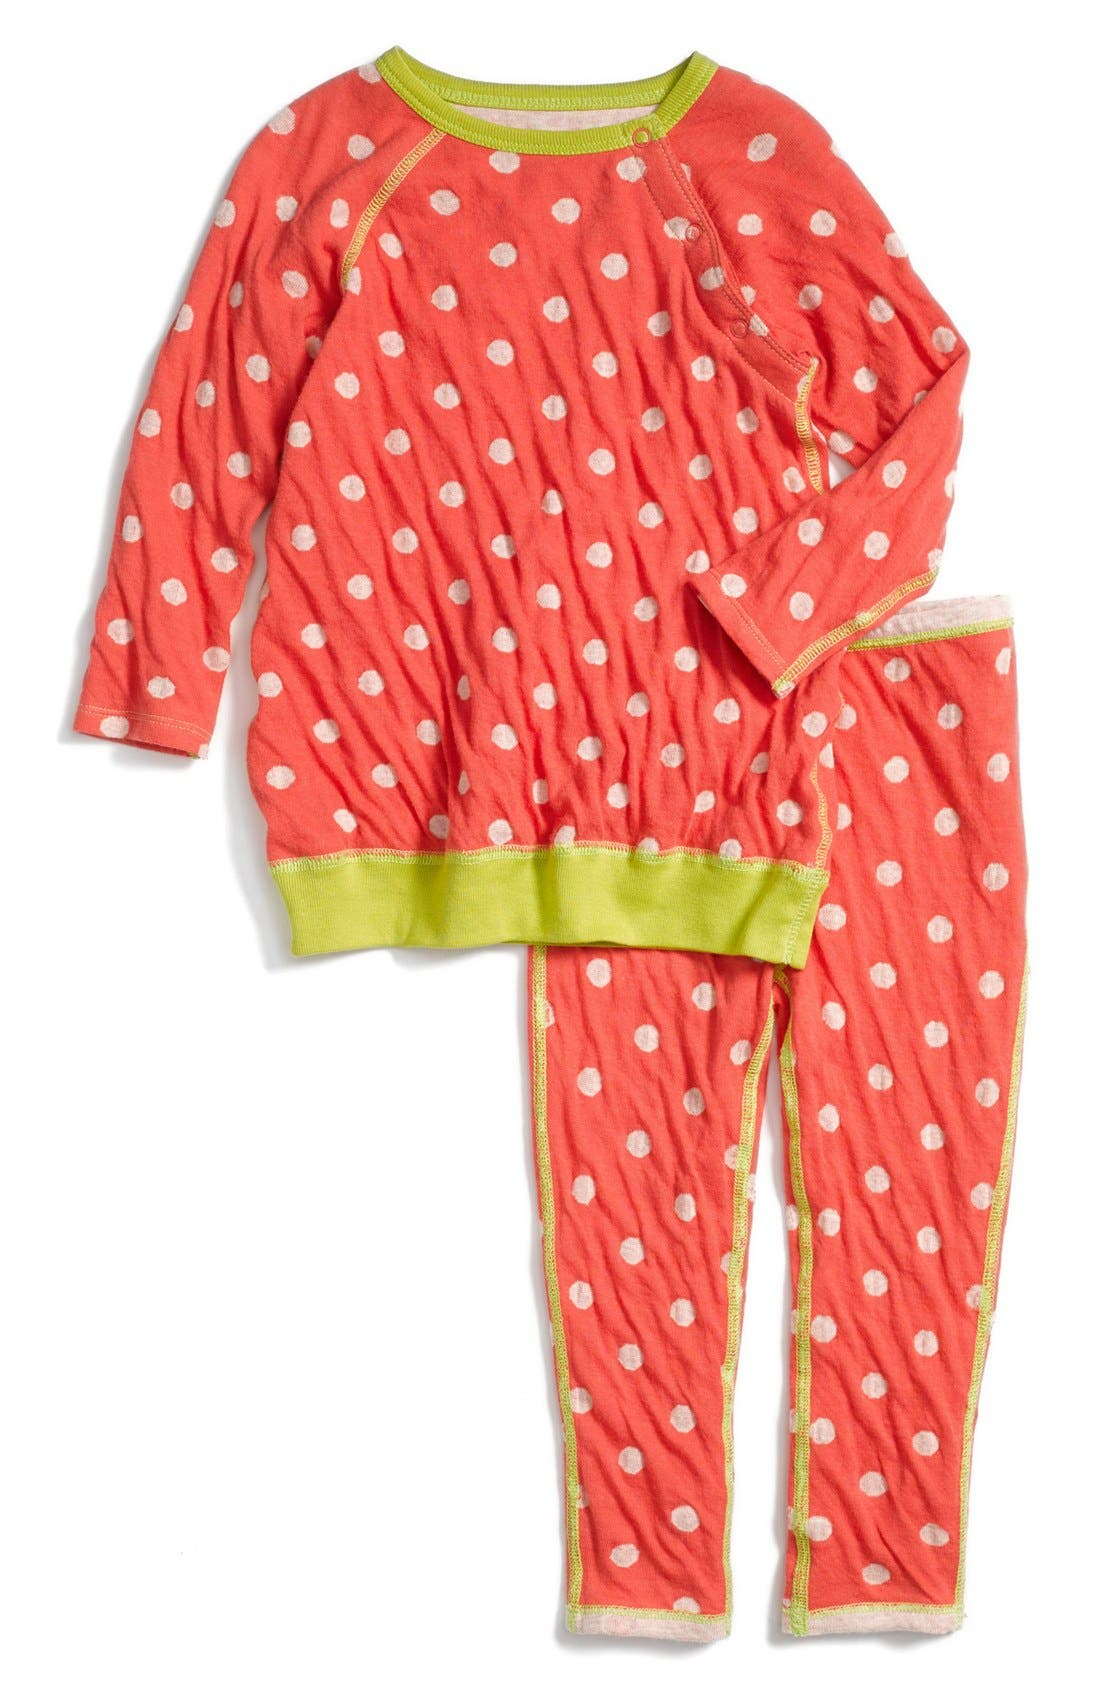 Alternate Image 1 Selected - Stem Baby Reversible Organic Cotton Sweatshirt & Pants Set (Baby)